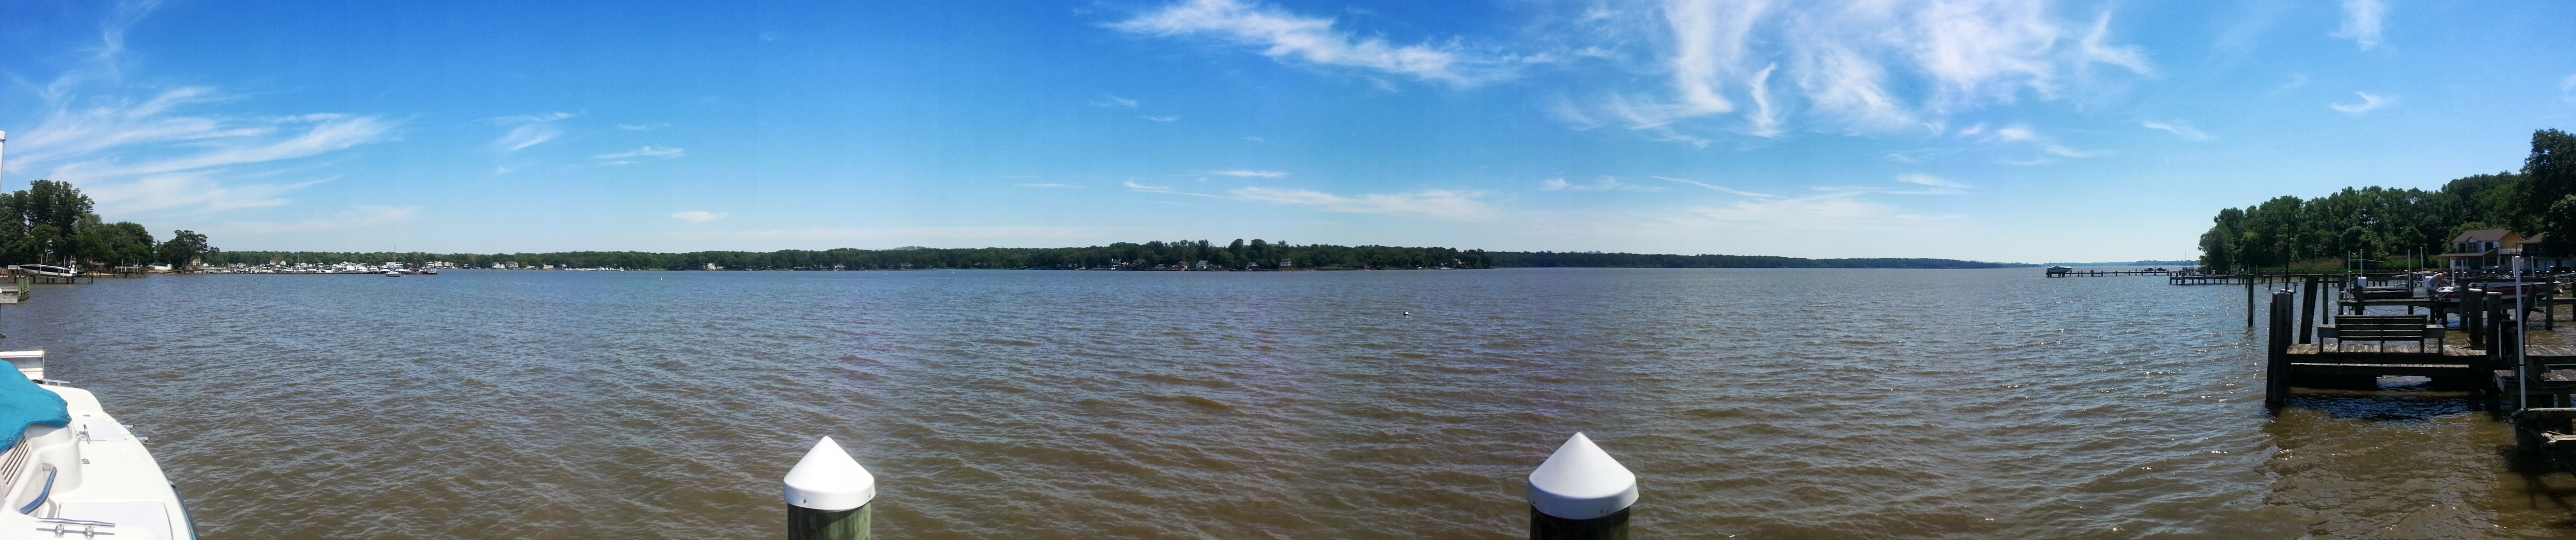 84 Crescent Ln Elkton MD Waterfront Home - View from Pier